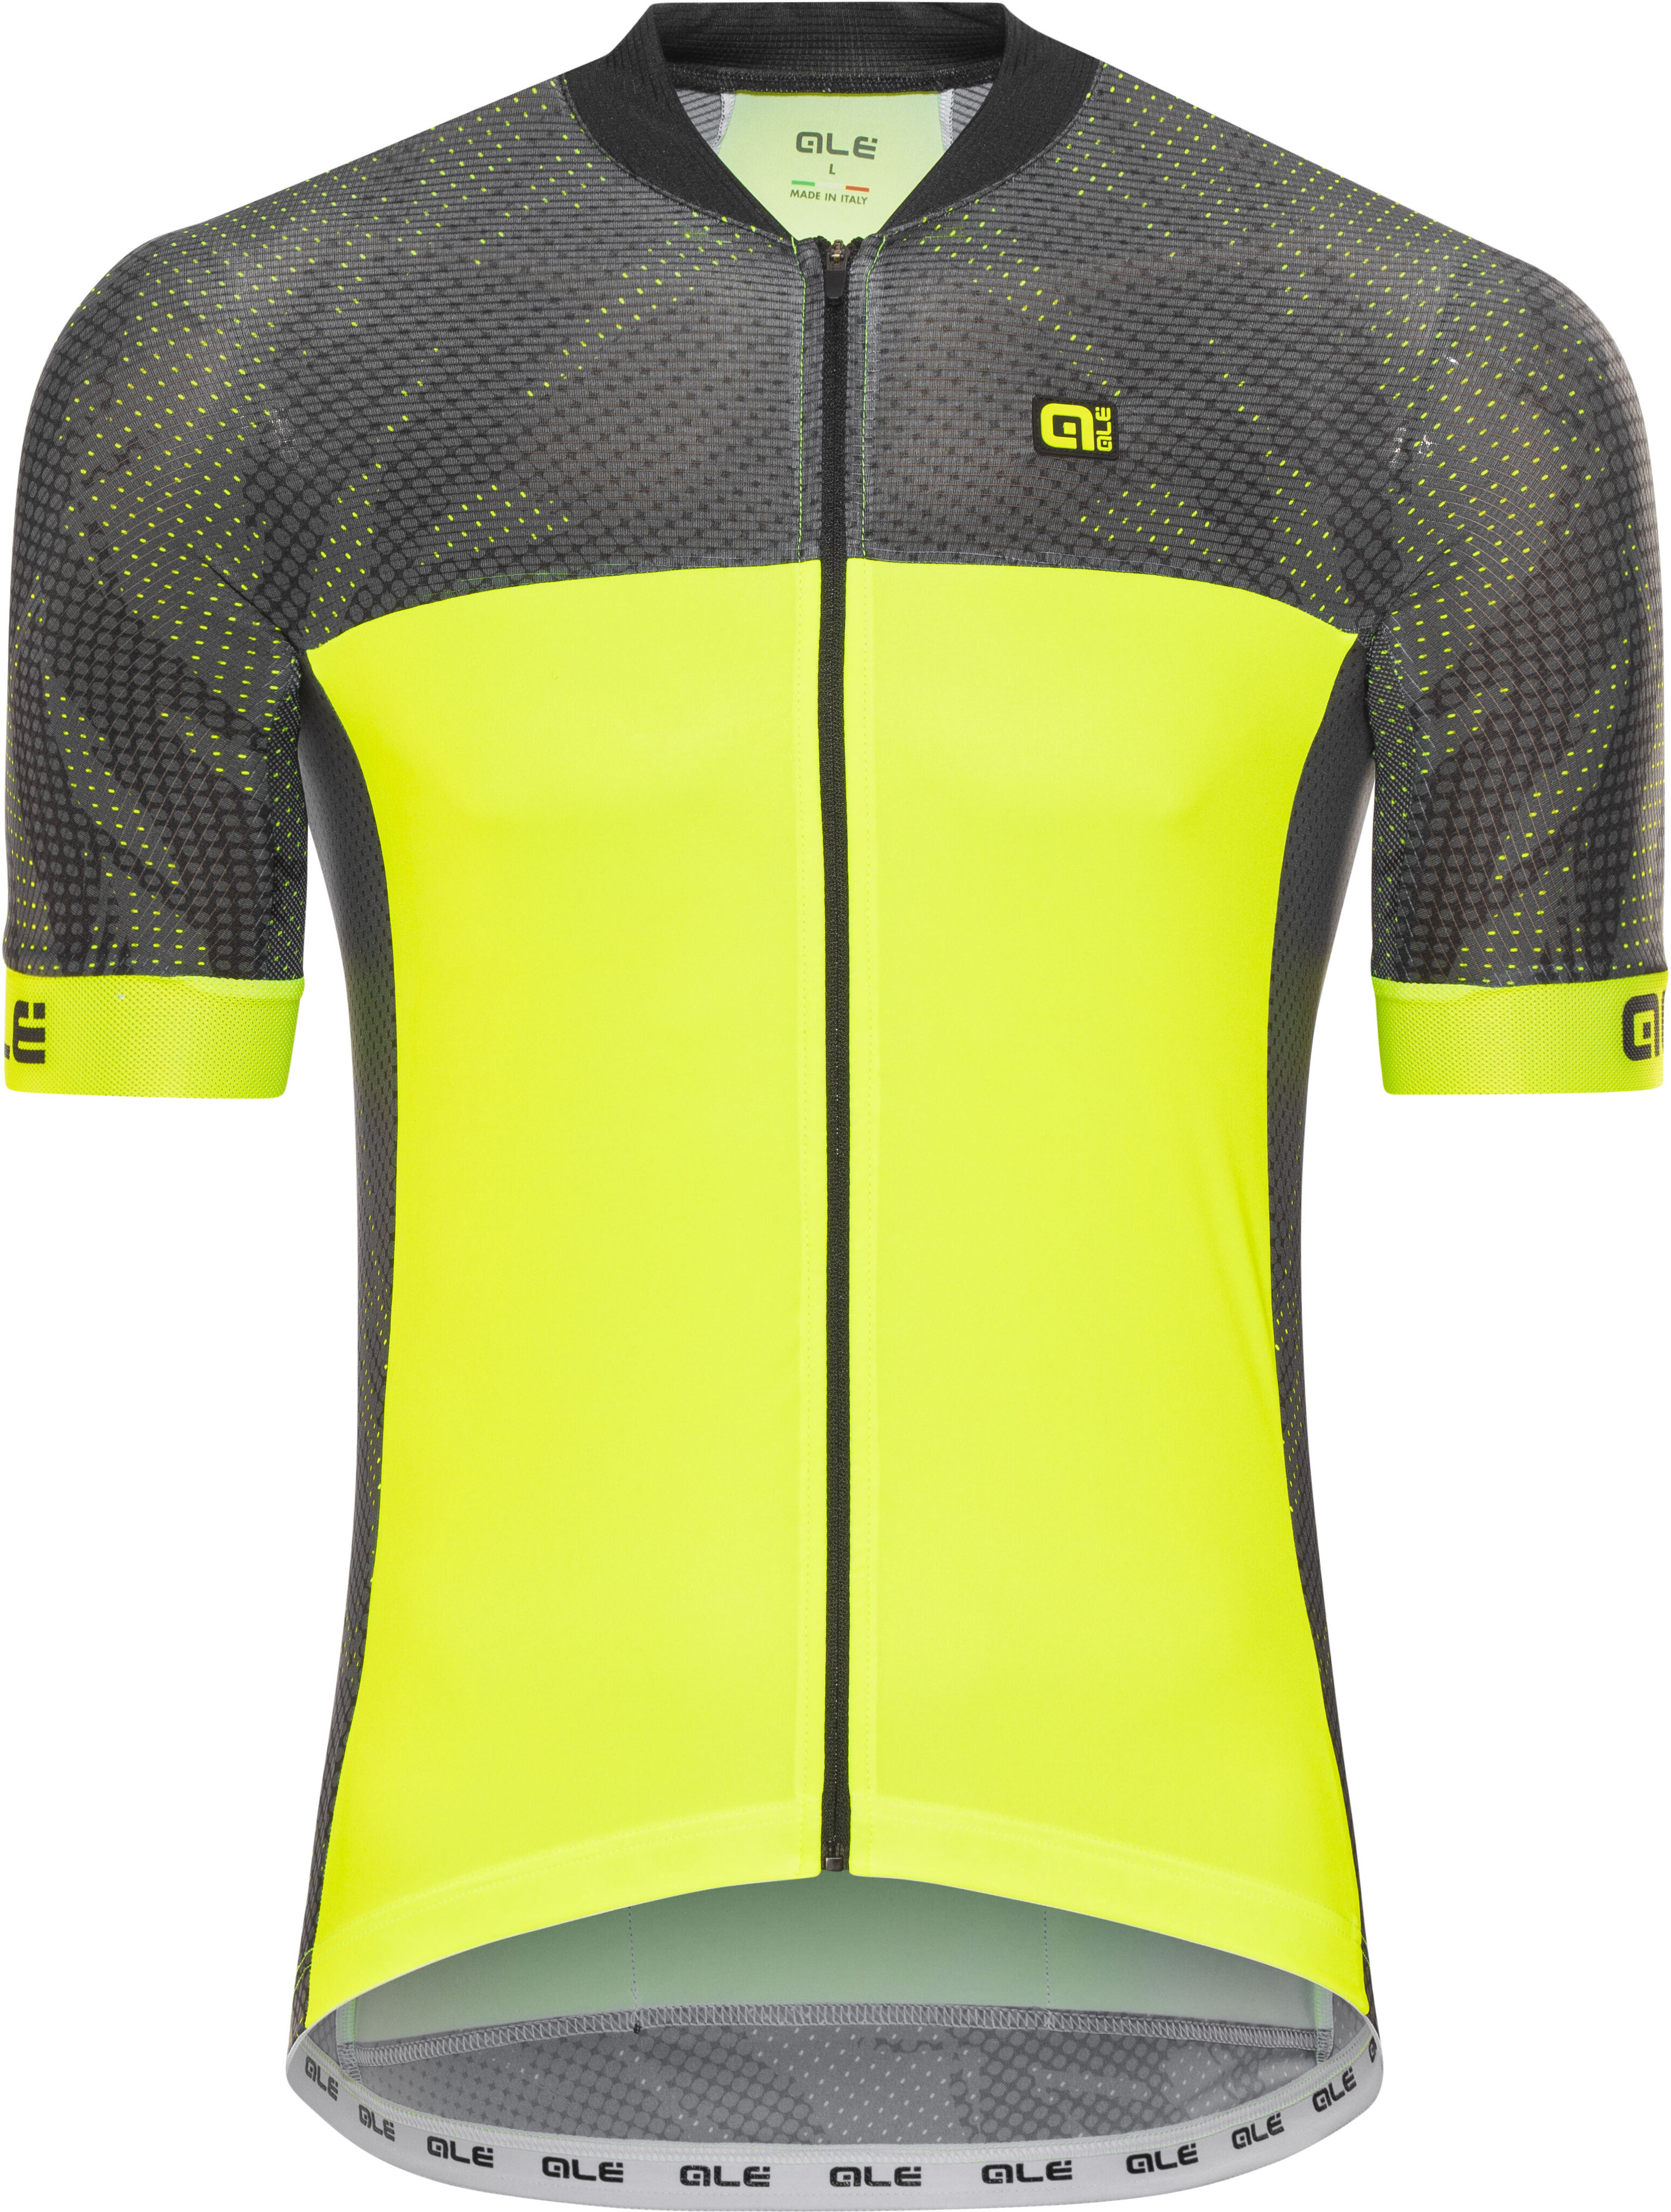 Alé Cycling Formula 1.0 Ultimate Bike Jersey Shortsleeve Men yellow black da167ae0e